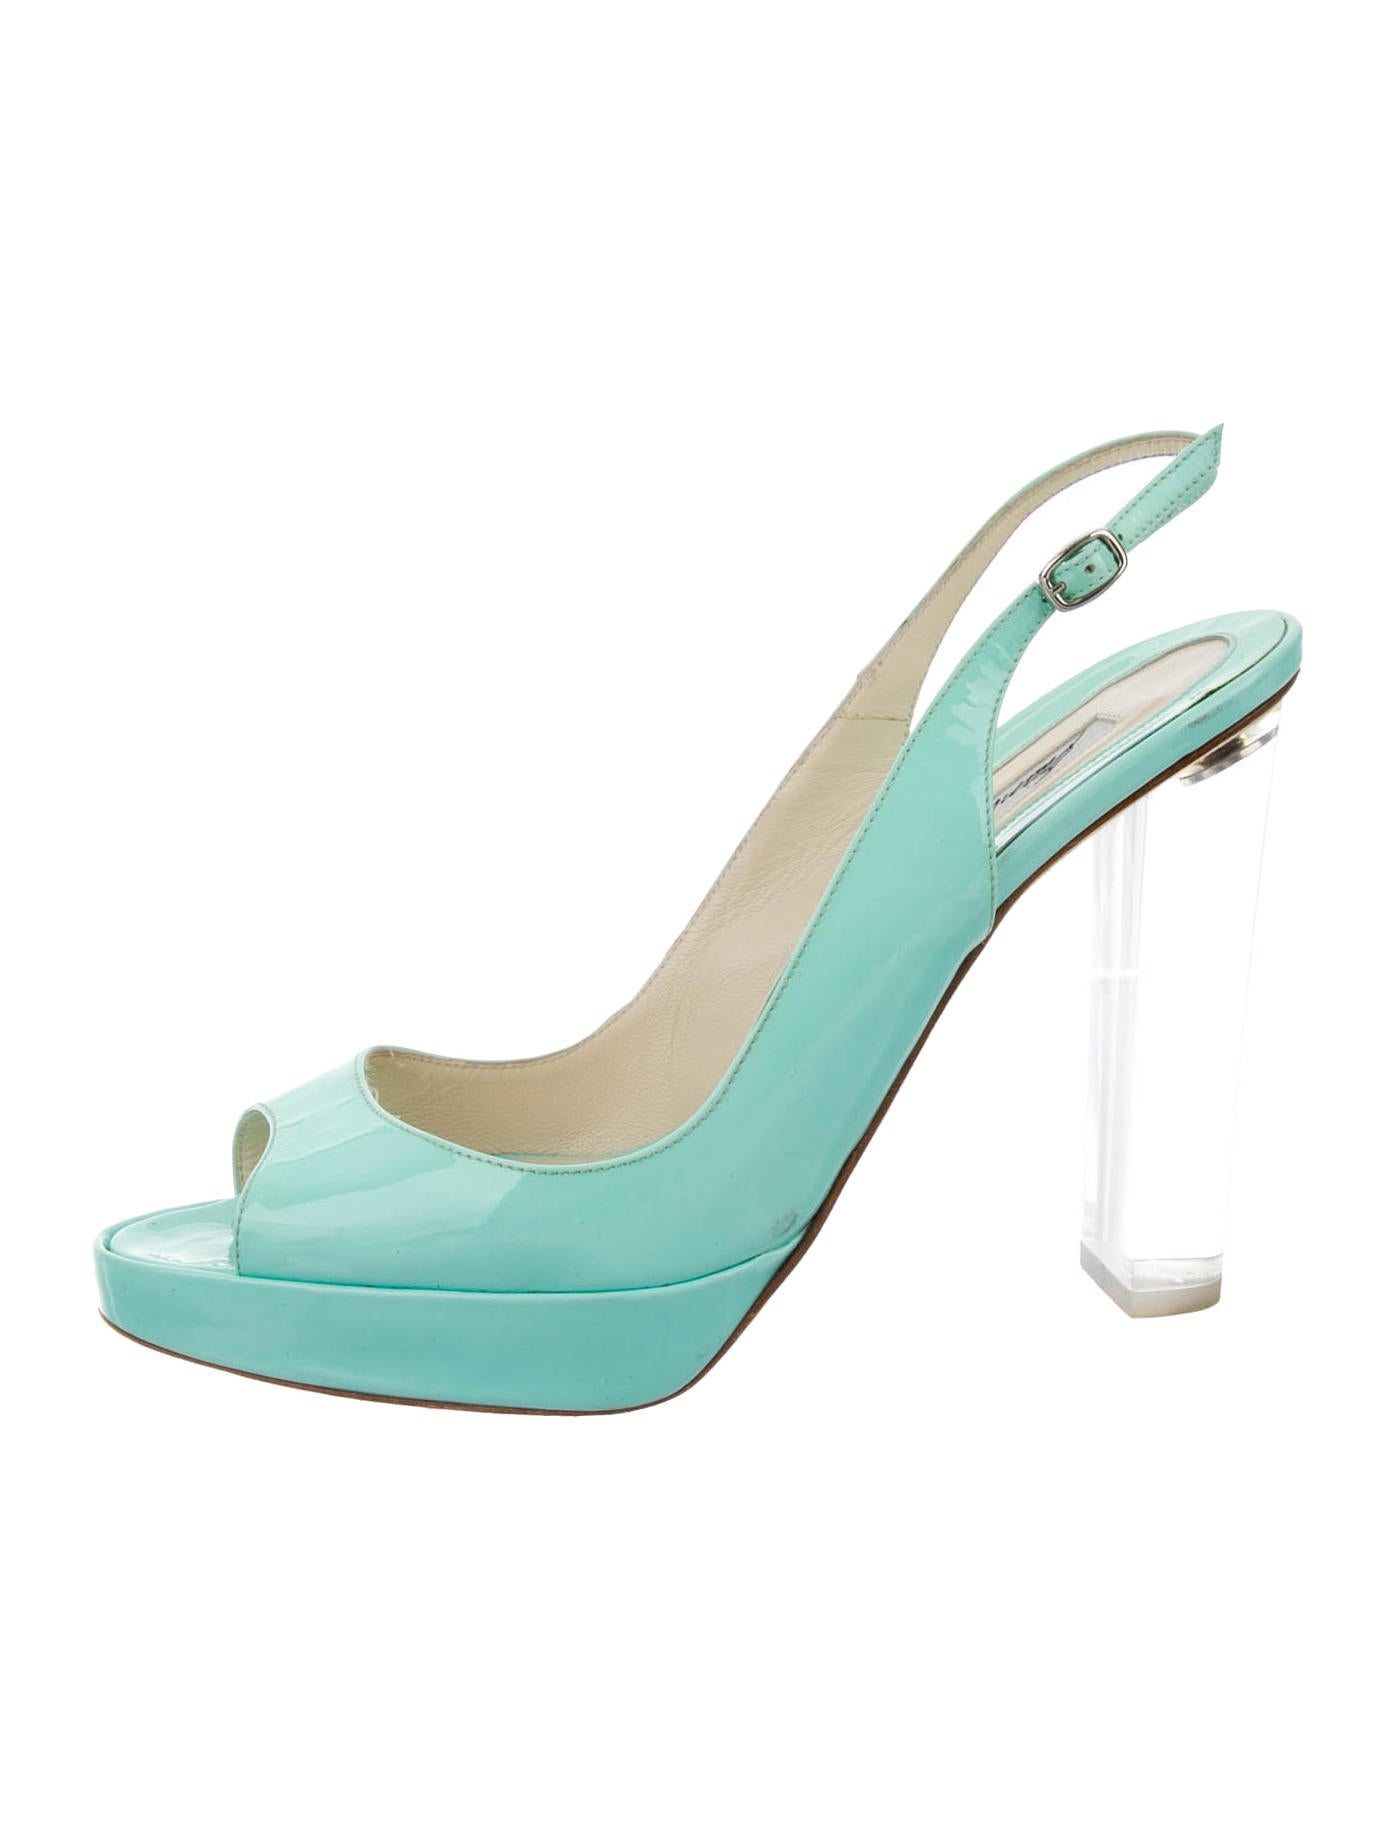 Brian Atwood Pumps - Shoes